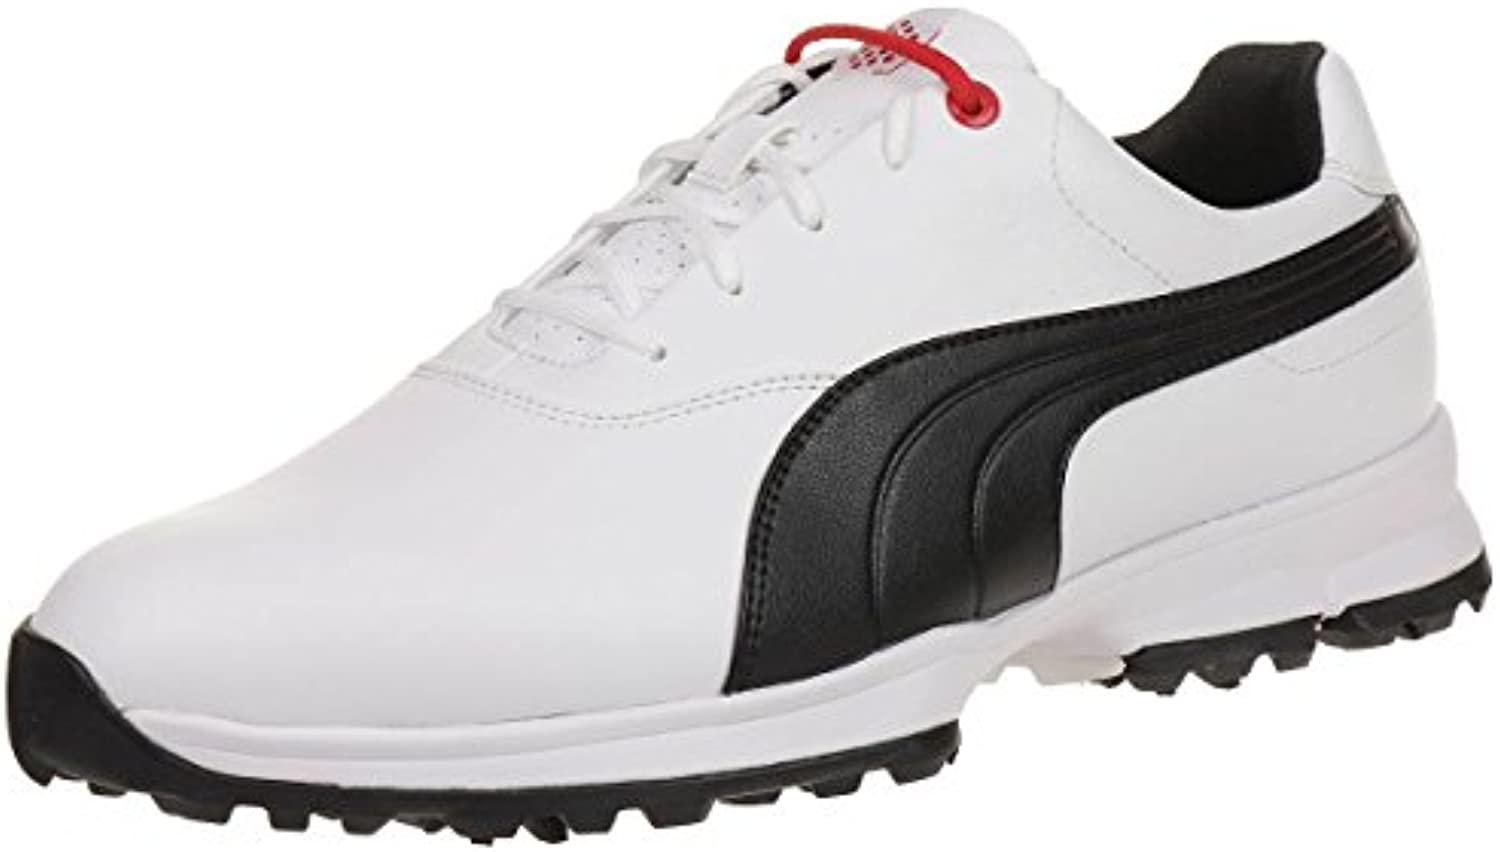 Puma Golf Ace Leather Men Golfschuhe Golf 188658 01 white, tamaño de zapato:EUR 40